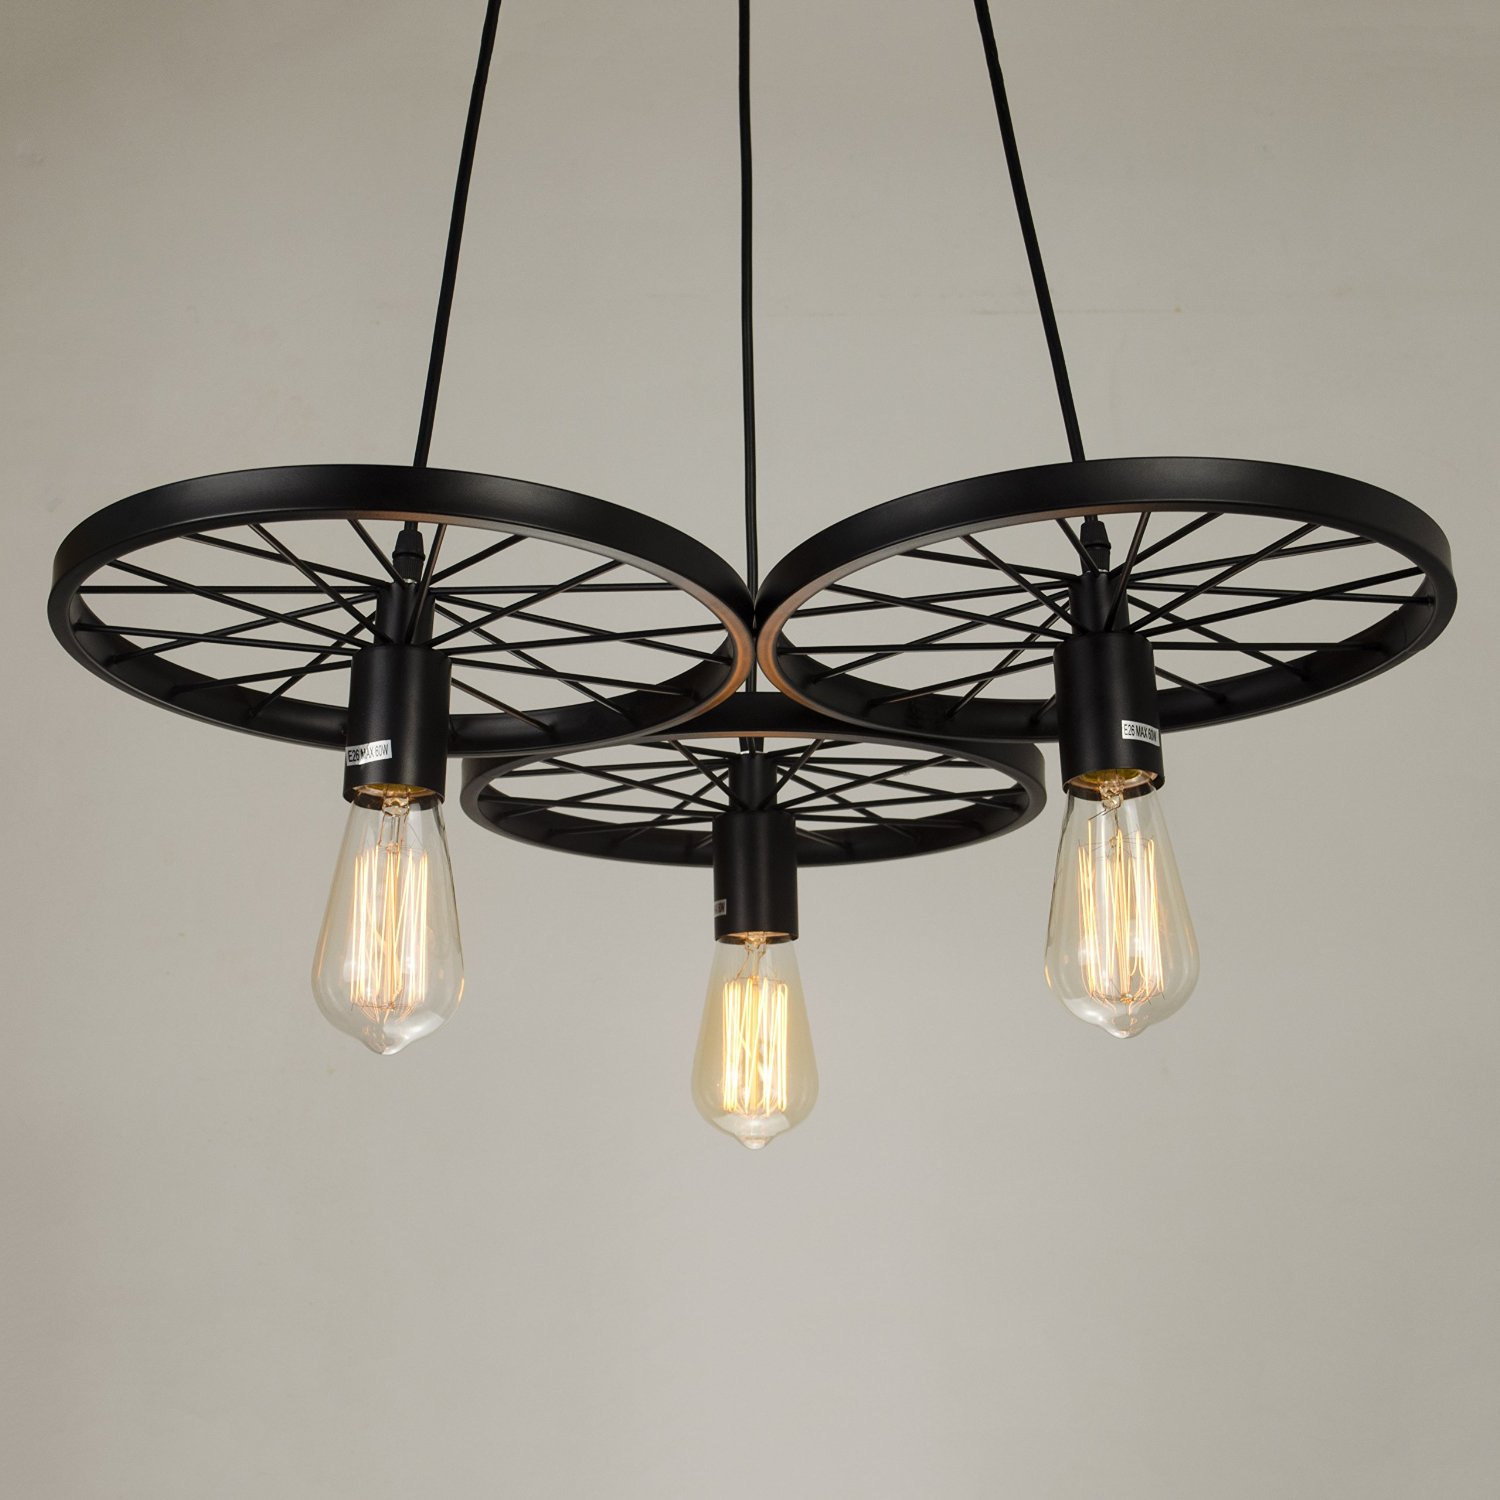 Industrial style pendant light 3 edison bulbs chandelier lighting kitchen pendan chandeliers - Light fixtures chandeliers ...